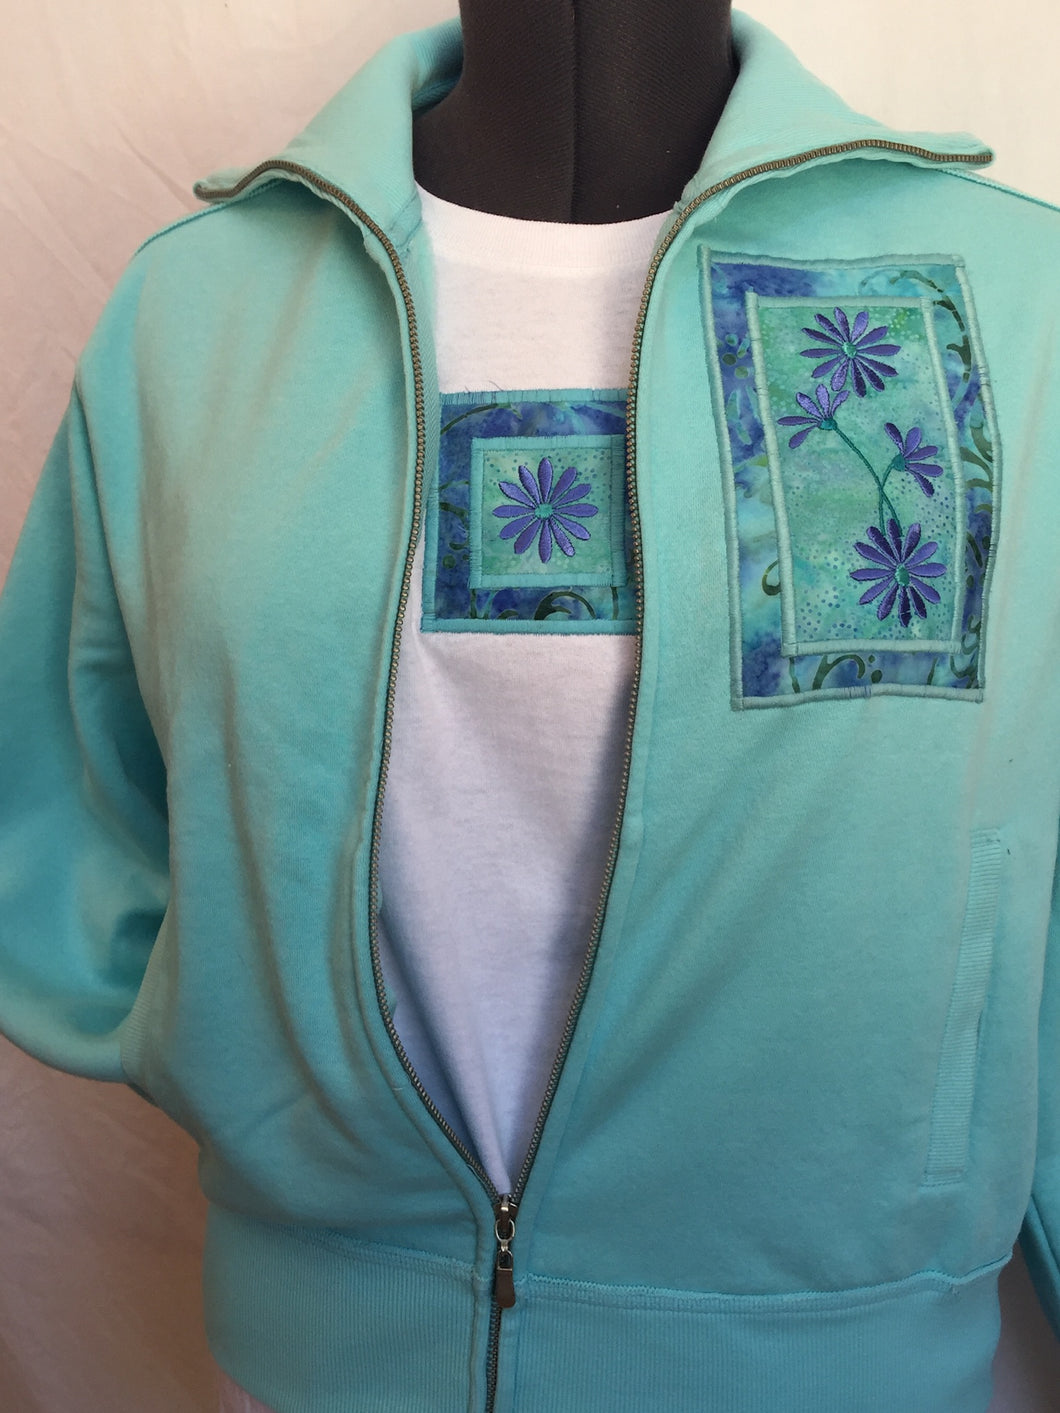 Aqua Zip Jacket Matching Short Sleeve T-Shirt